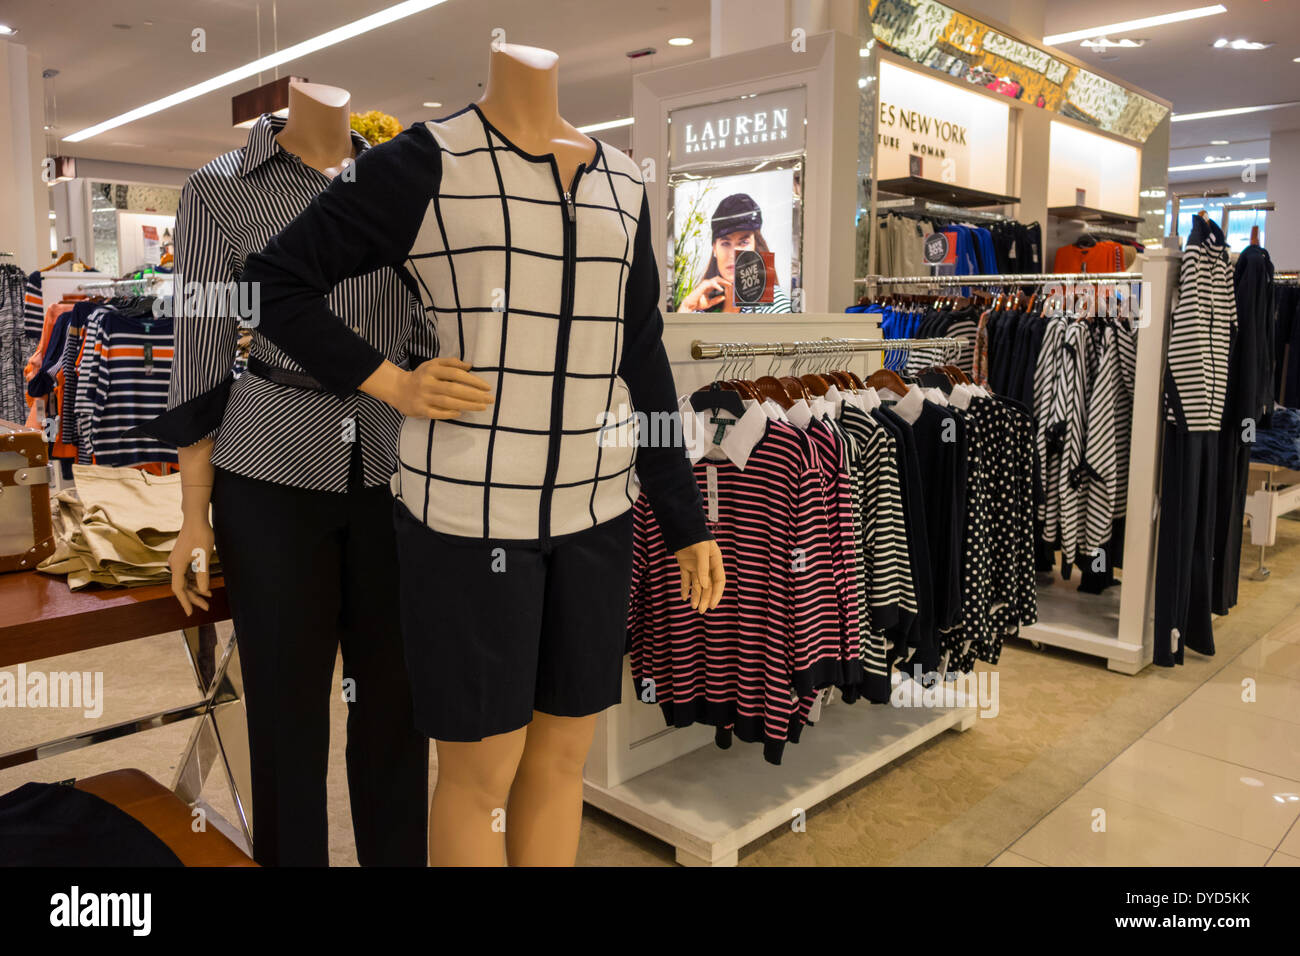 Retail clothing stores for sale